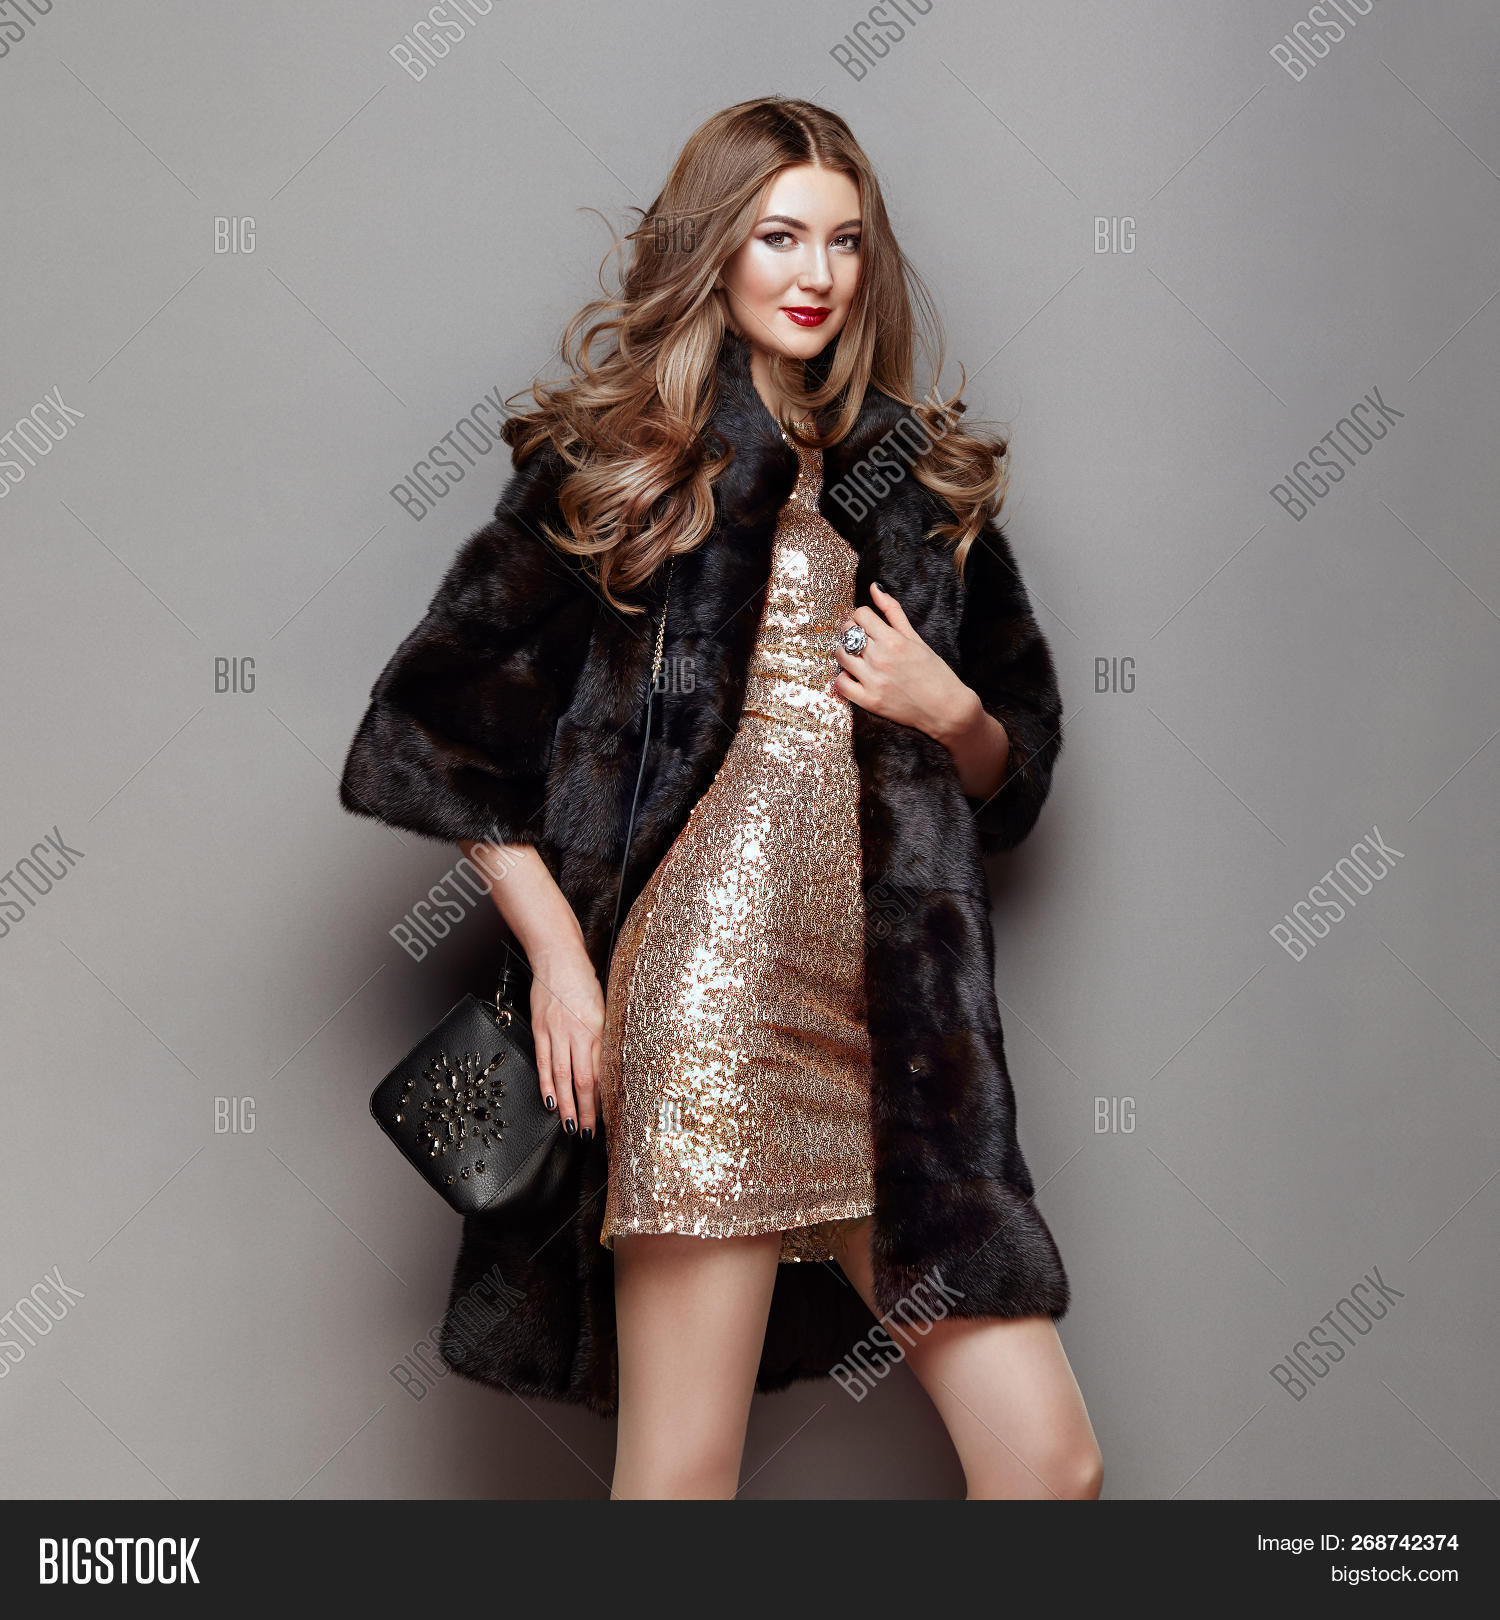 accessories,background,beautiful,beauty,blonde,clothing,color,curls,dress,eco-fur,elegance,elegant,fashion,fashionable,female,figure,fur,furcoat,girl,glamour,grace,gray,hair,hairstyle,happy,lady,lifestyle,luxurious,makeup,model,outfit,person,portrait,posing,redhead,sale,shopping,silver,smile,spring,studio,stylish,urban,vogue,waistcoat,winter,woman,womanly,young